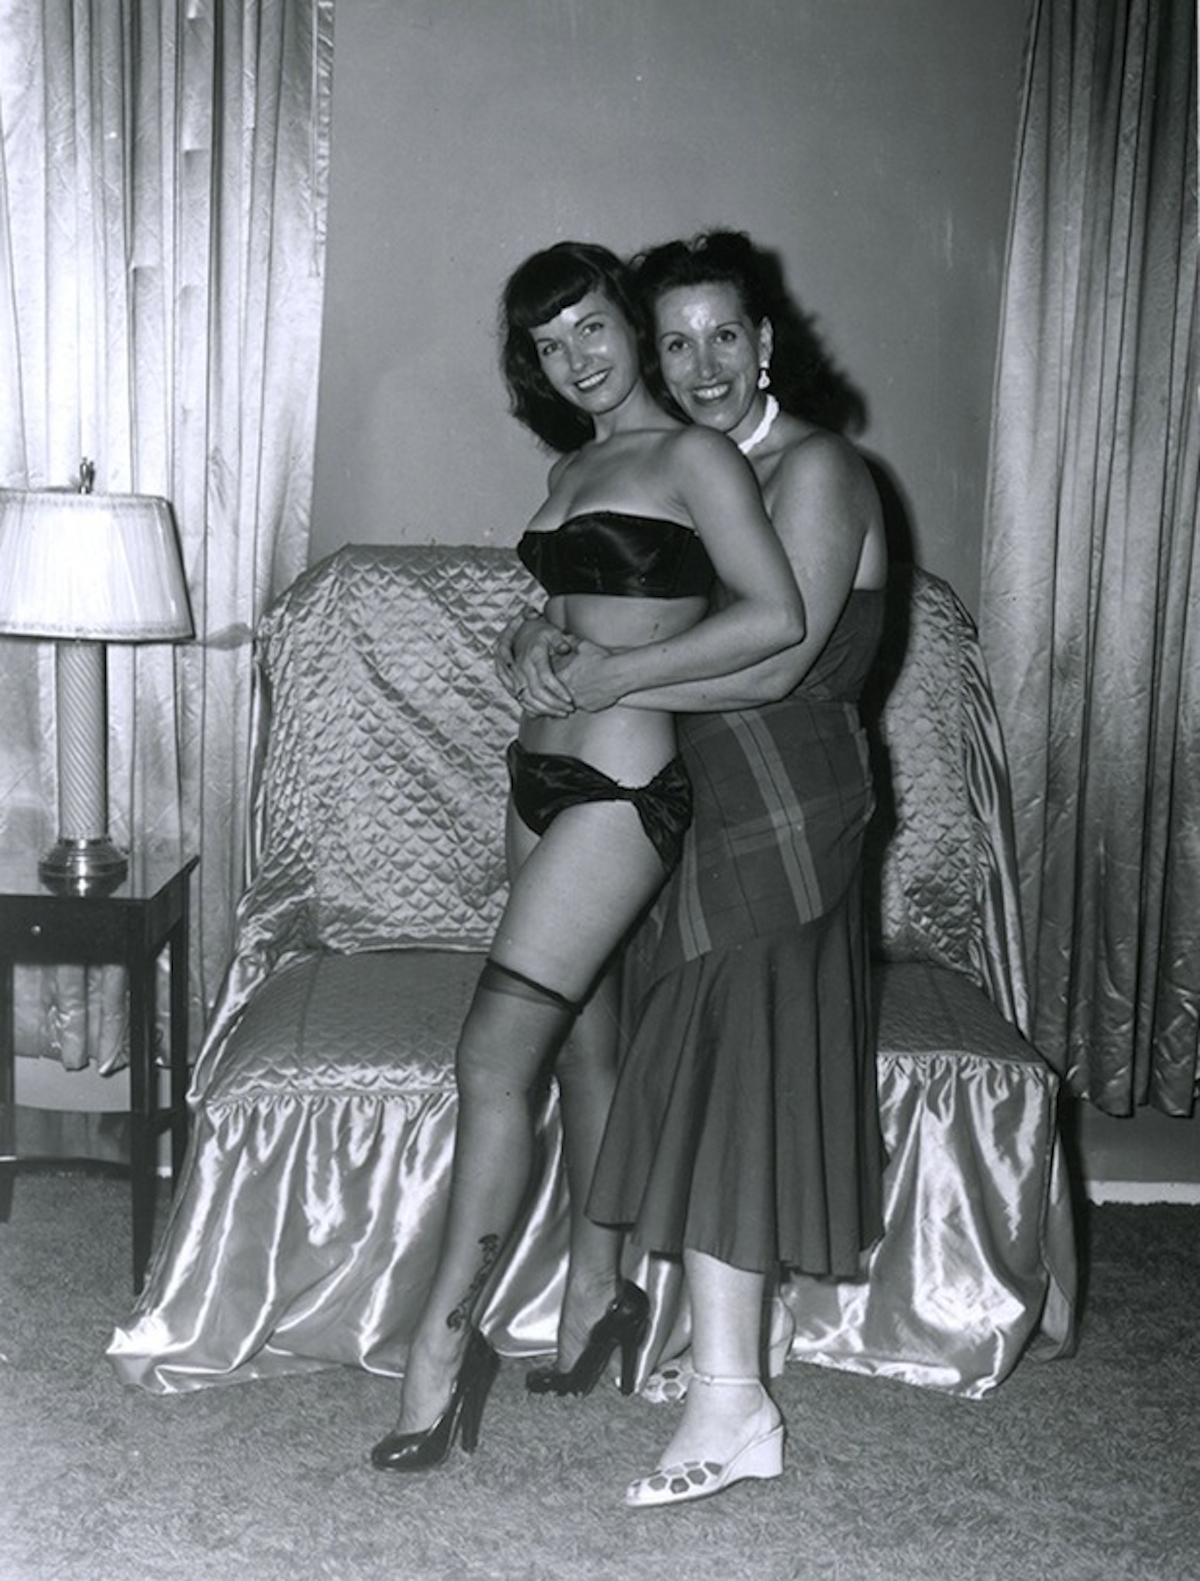 Bettie Page (left) with her photographer Paula Klaw, circa mid-1950s. Courtesy Movie Star News.